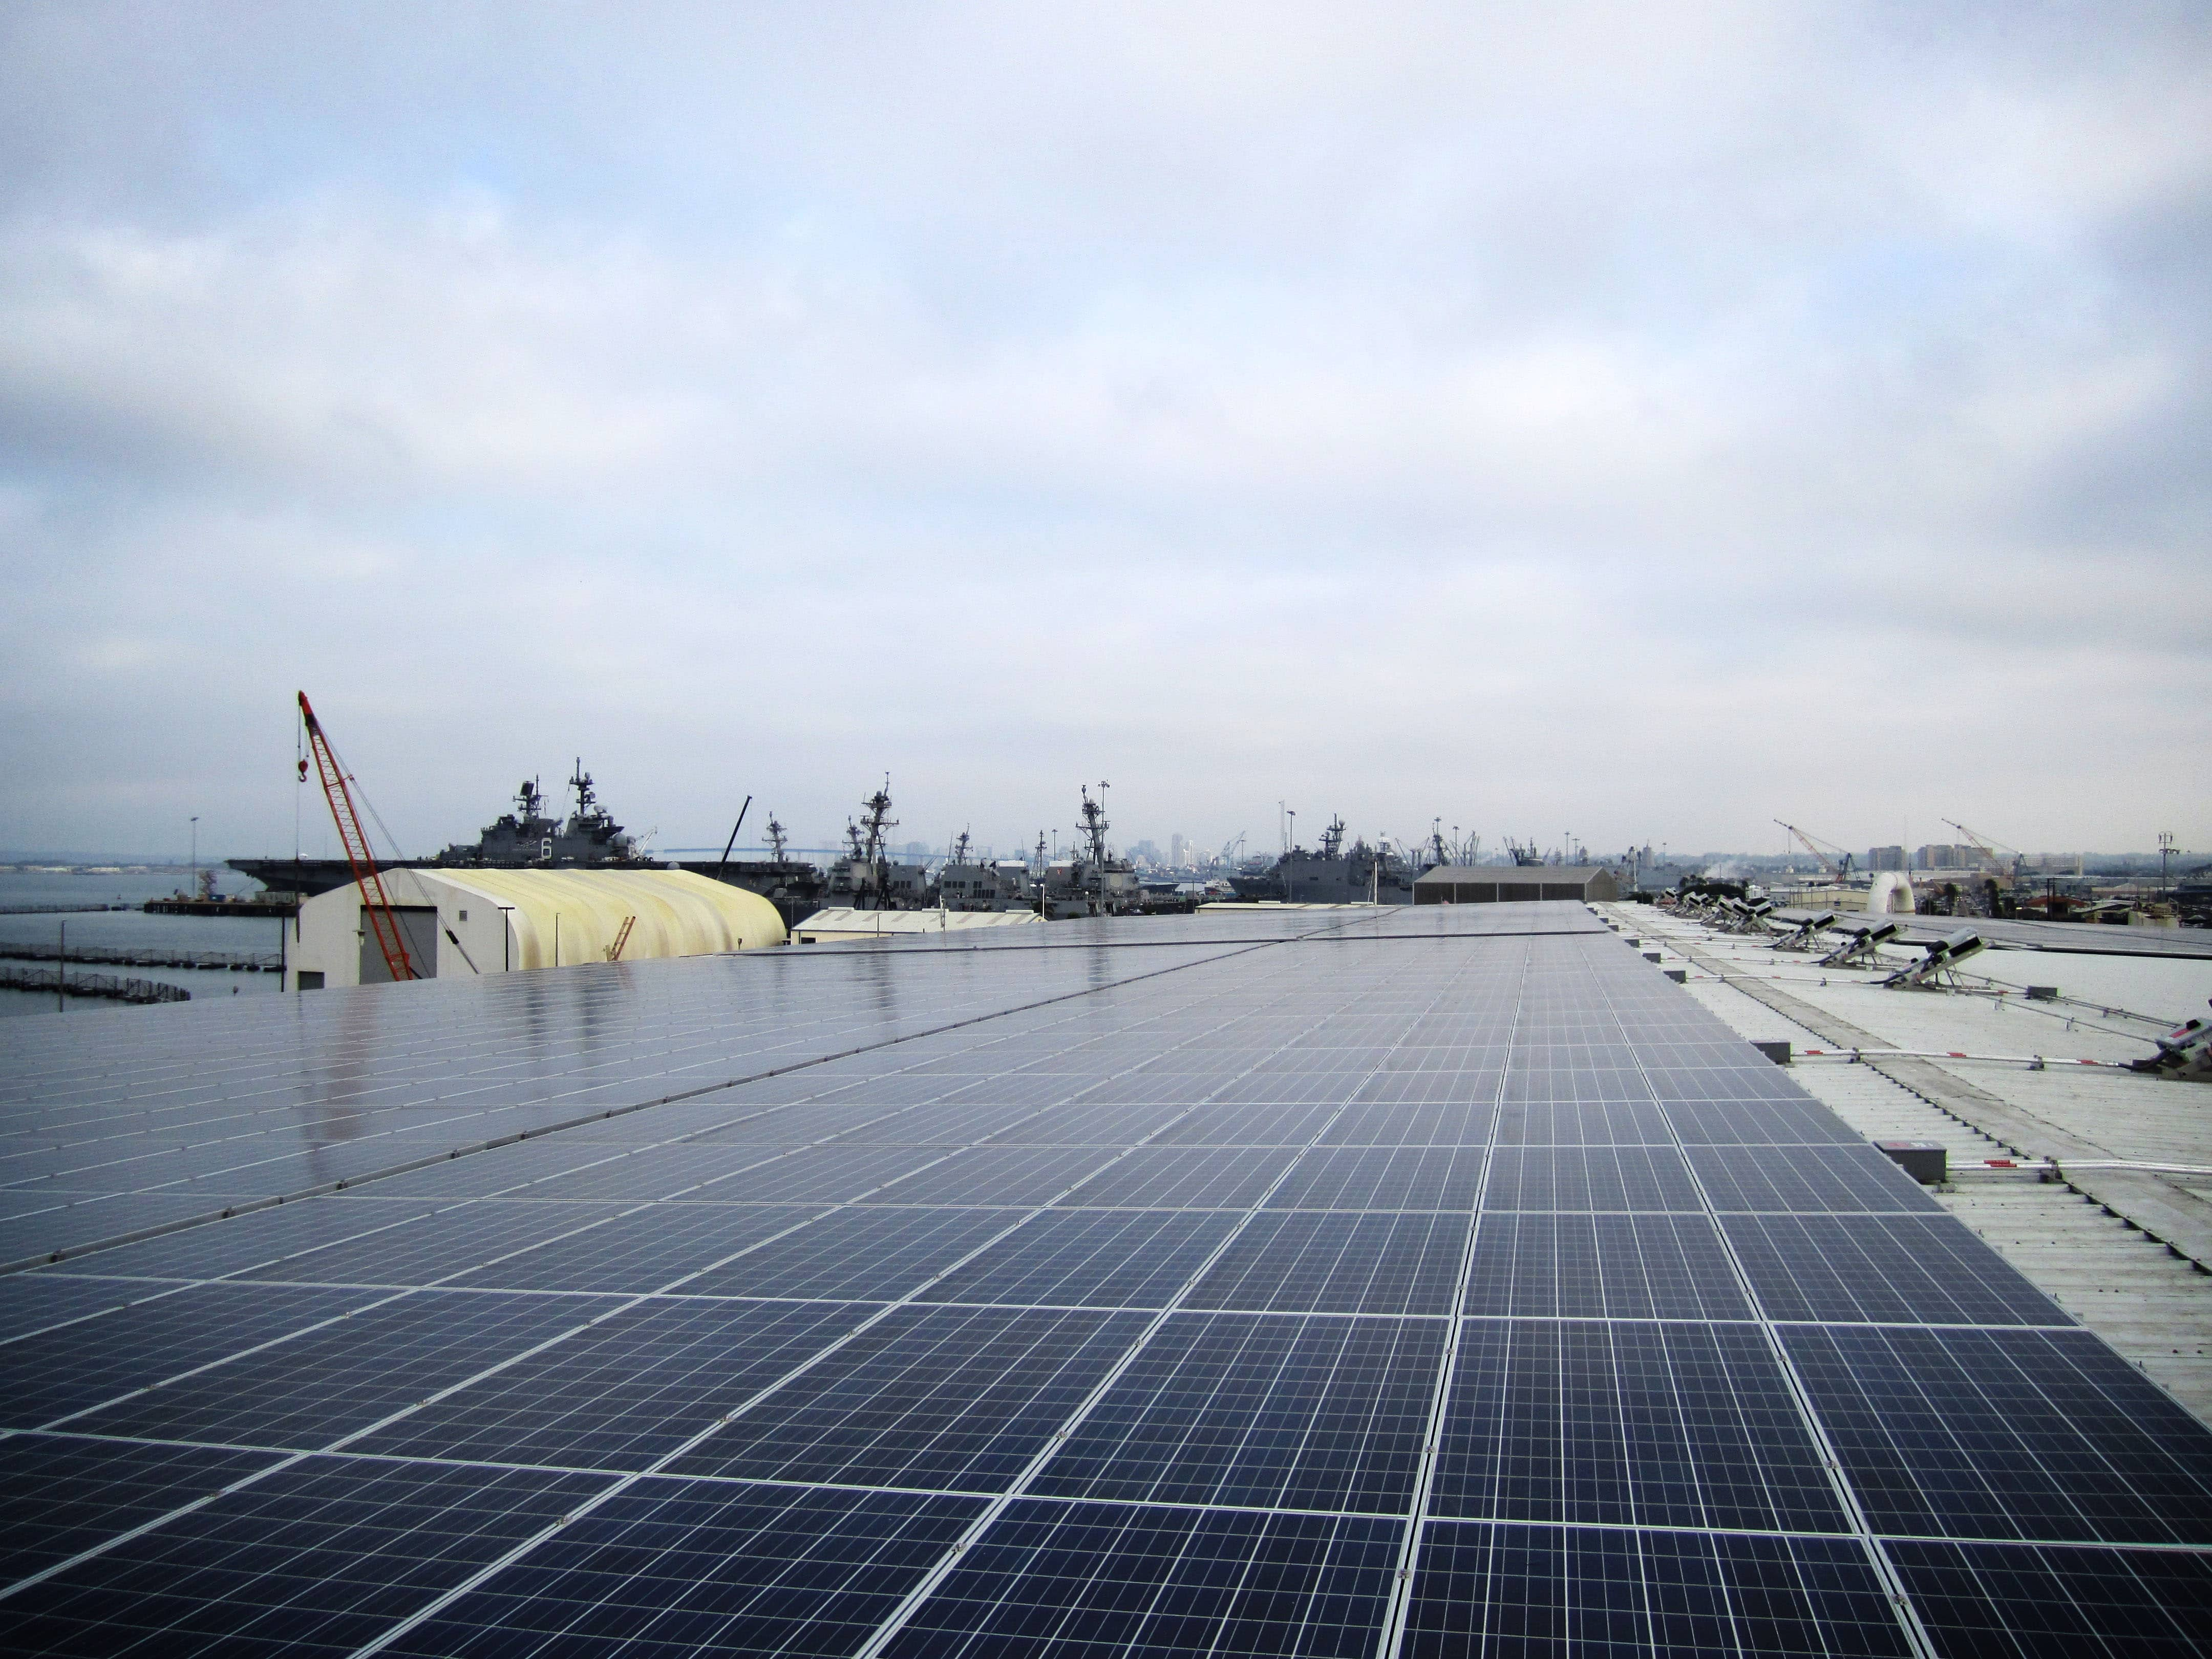 Baker Boat Builder: 'We Chose To Do The Right Thing' By Going Solar